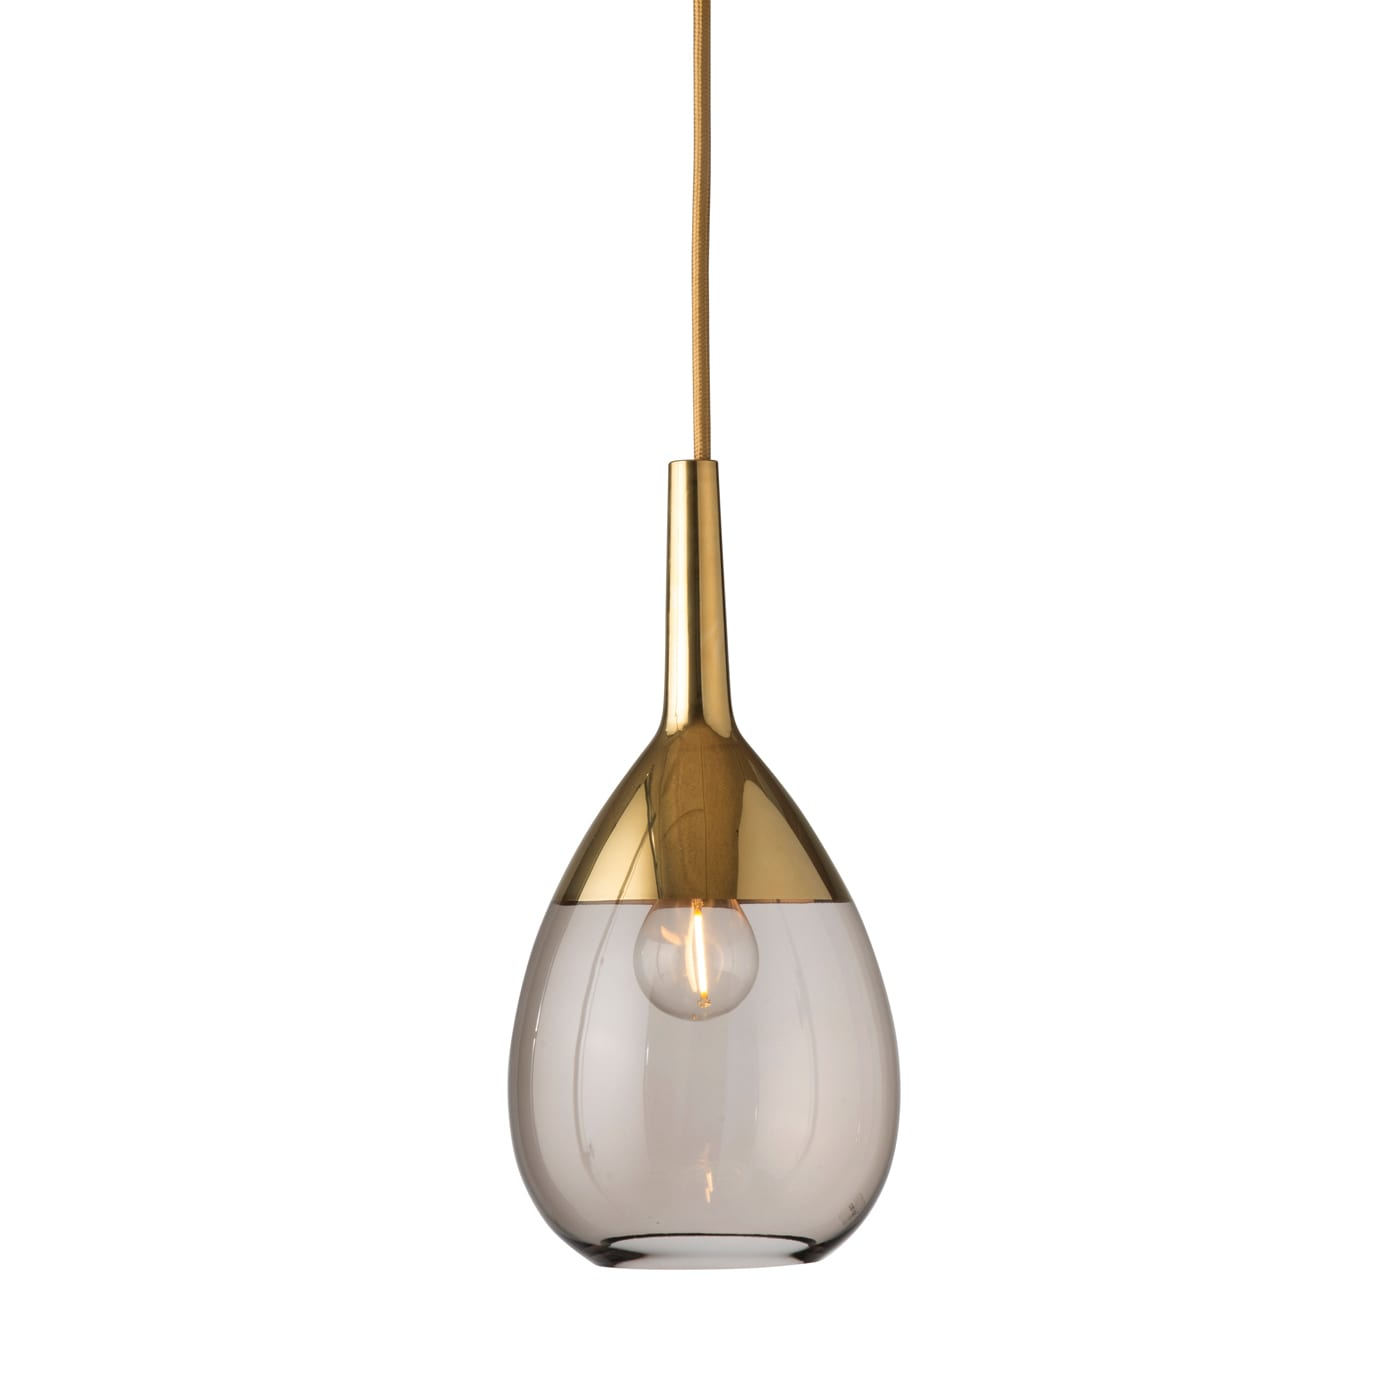 Lute Pendant Lamp, Chestnut Brown / Gold, 27cmH